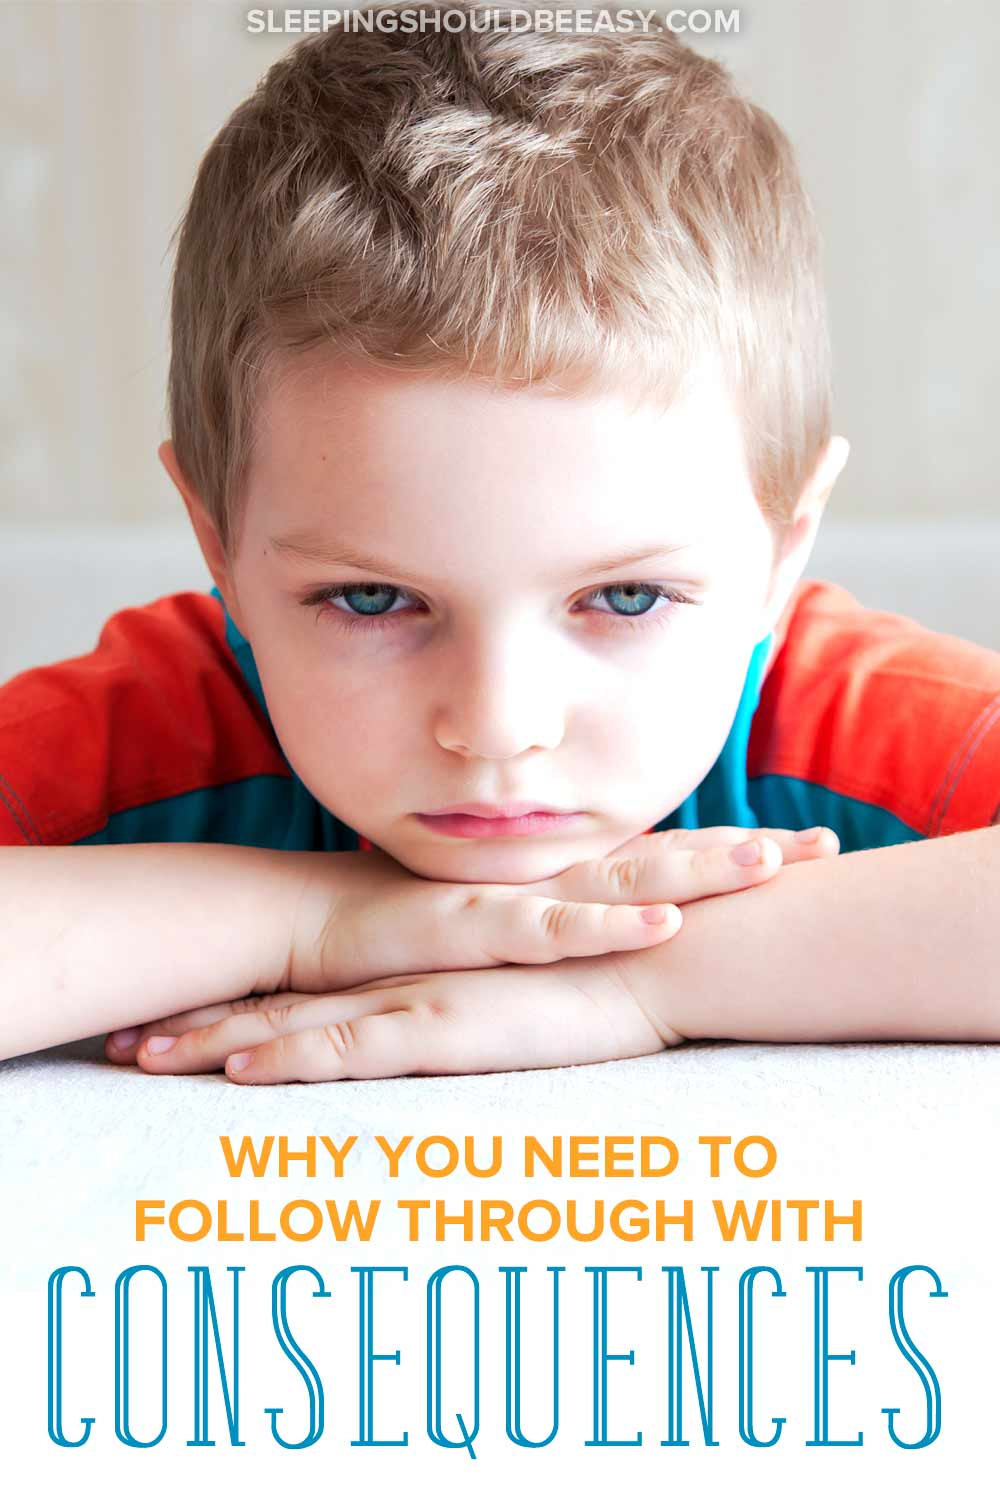 Little boy upset: Why you need to follow through with consequences